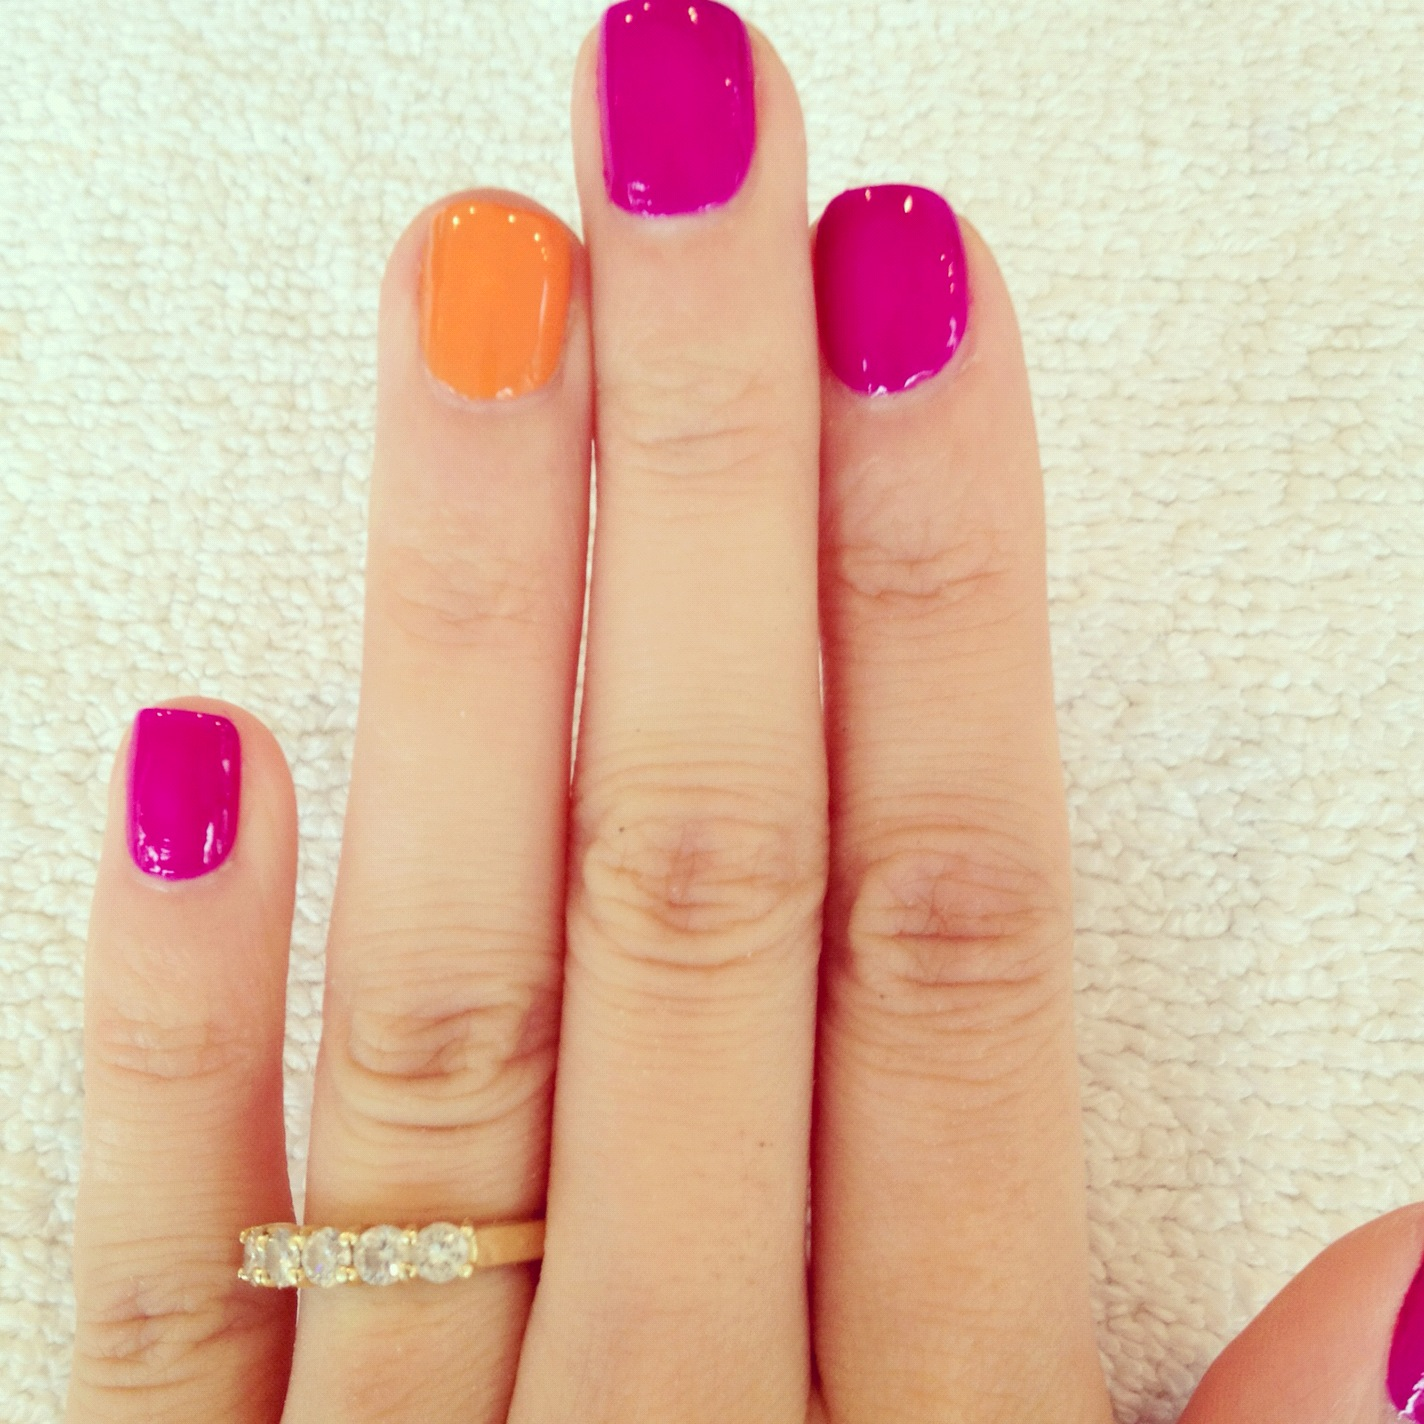 Accent nails, la manicura de moda